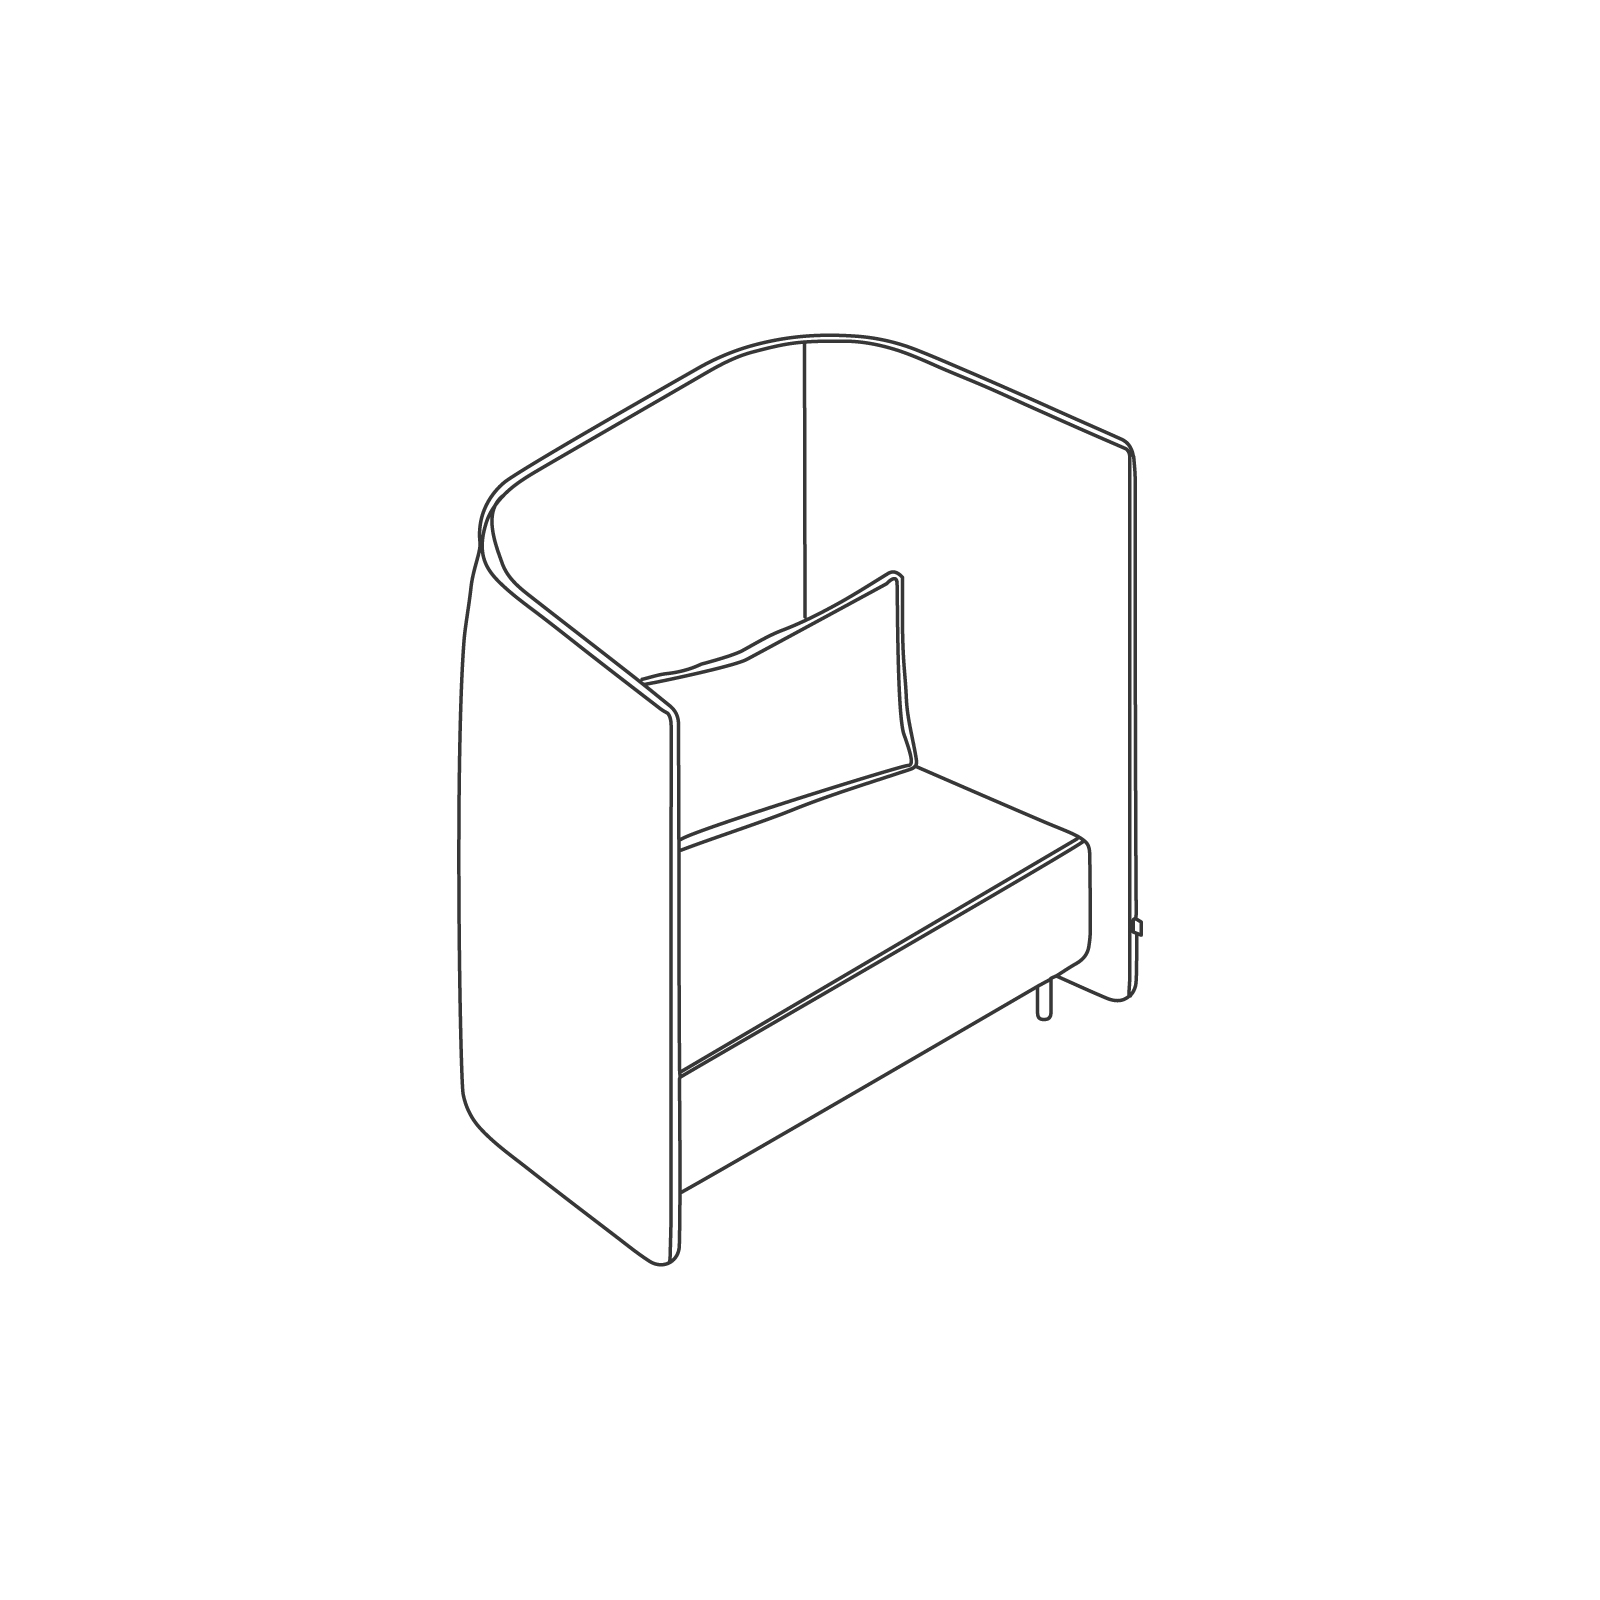 A line drawing of Cloud Plain Sofa–High Back–1.5 Seat.